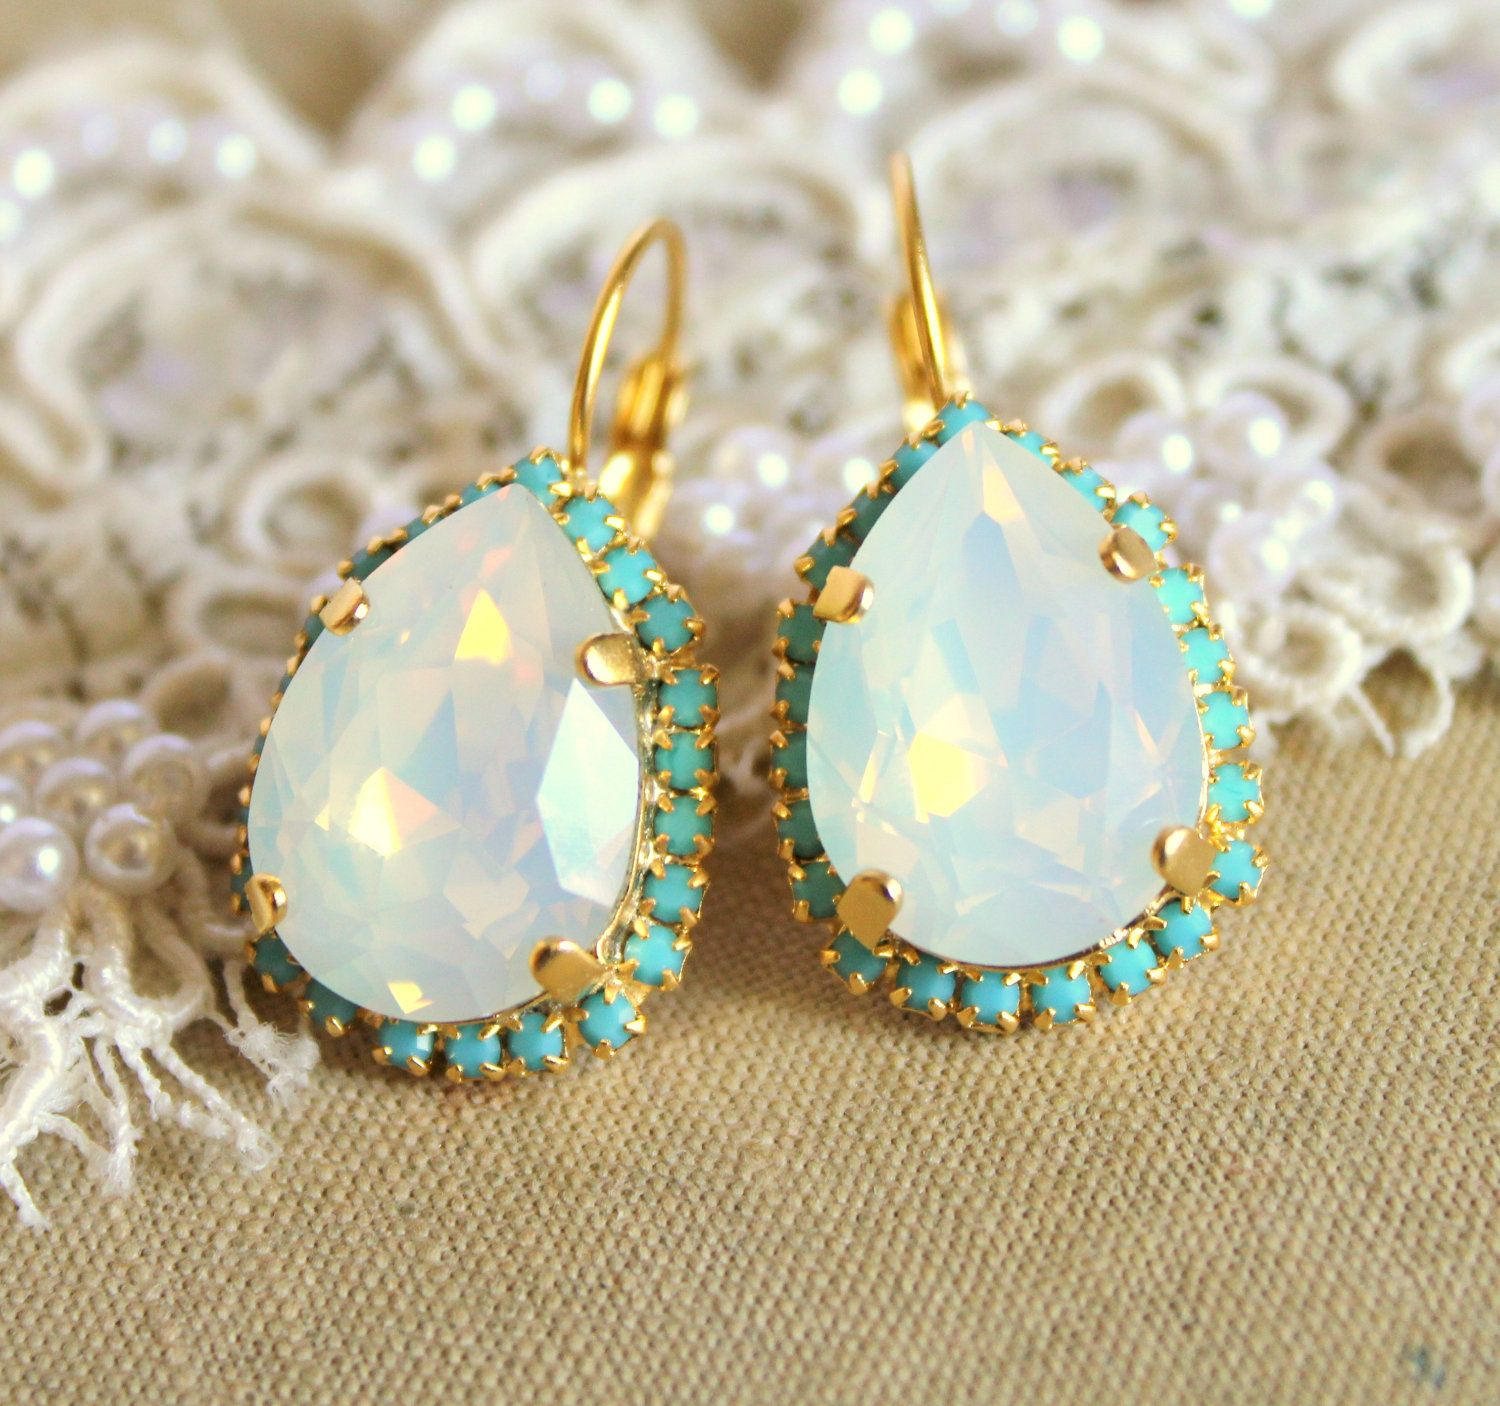 real teardrop pin earrings post stud swarovski by gray opal earring iloniti big gold plated rhinestones k crystal